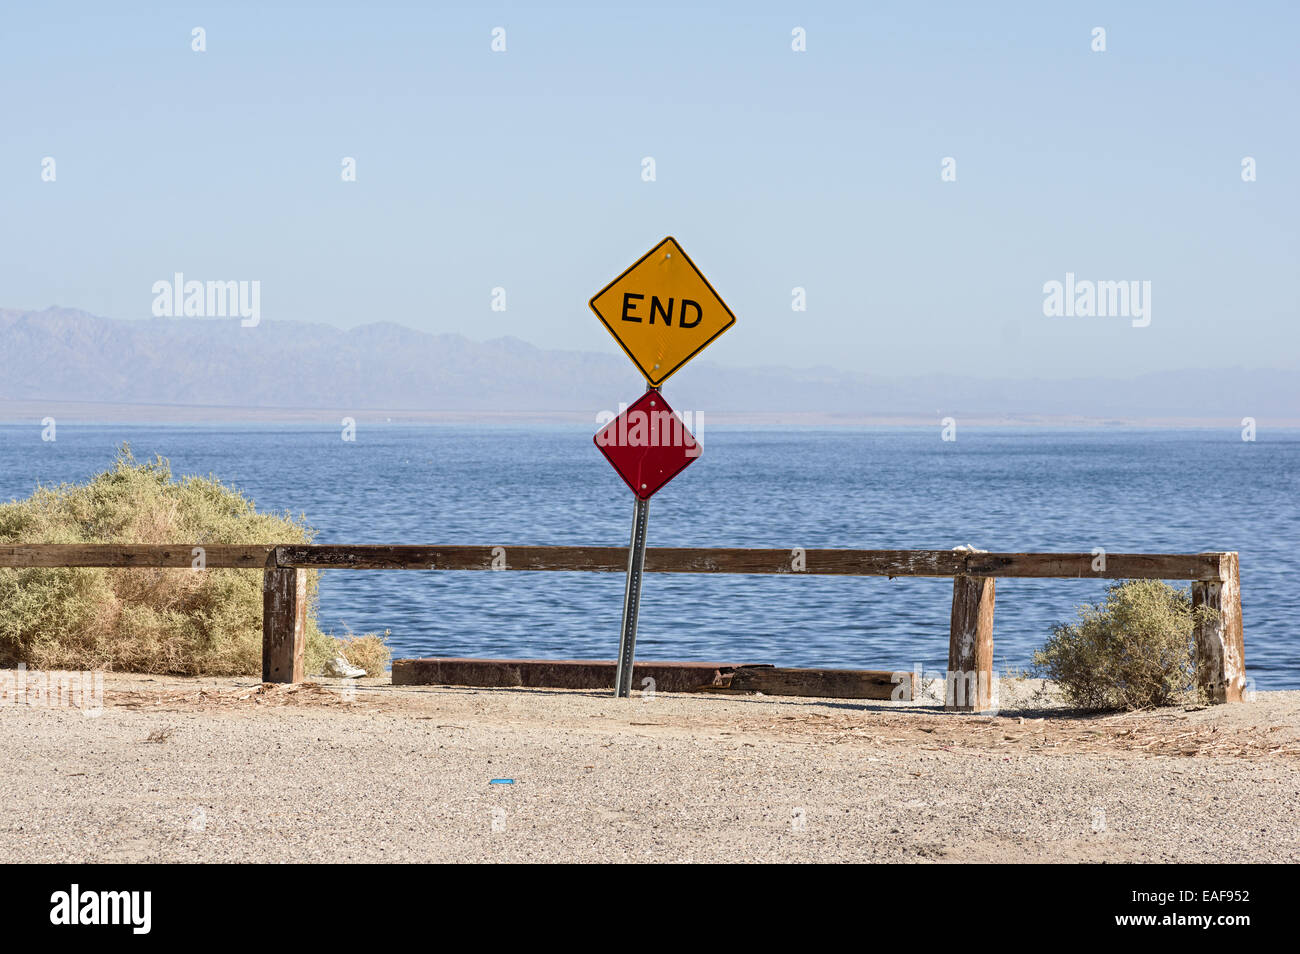 the end of the road where a road dead ends into the Salton Sea with a sign and barrier - Stock Image